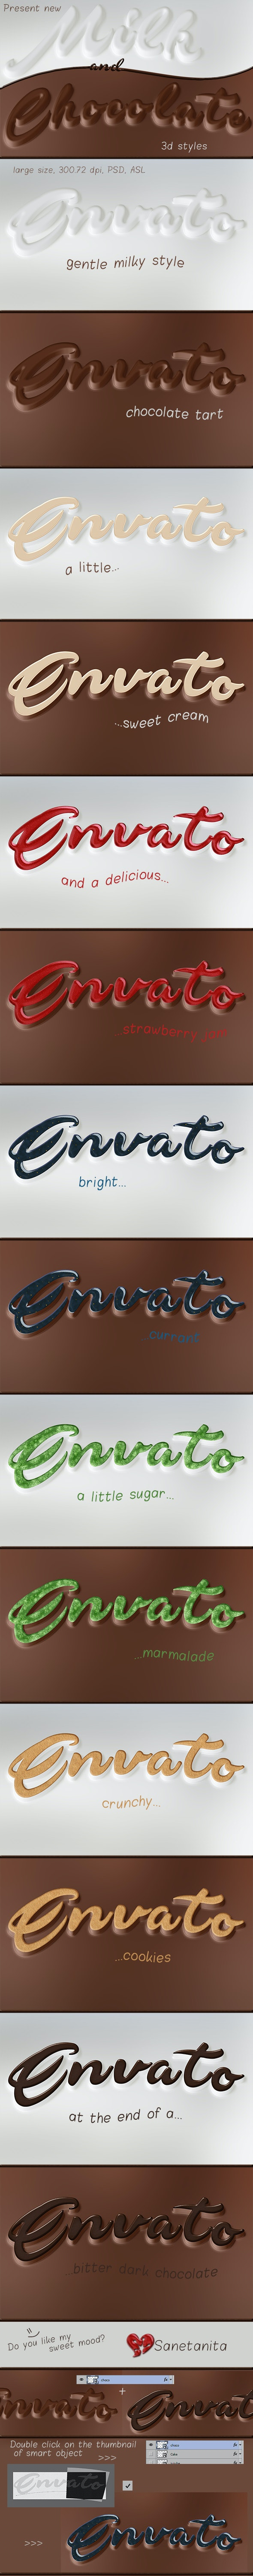 Milk & Chocolate 3D styles - Text Effects Styles